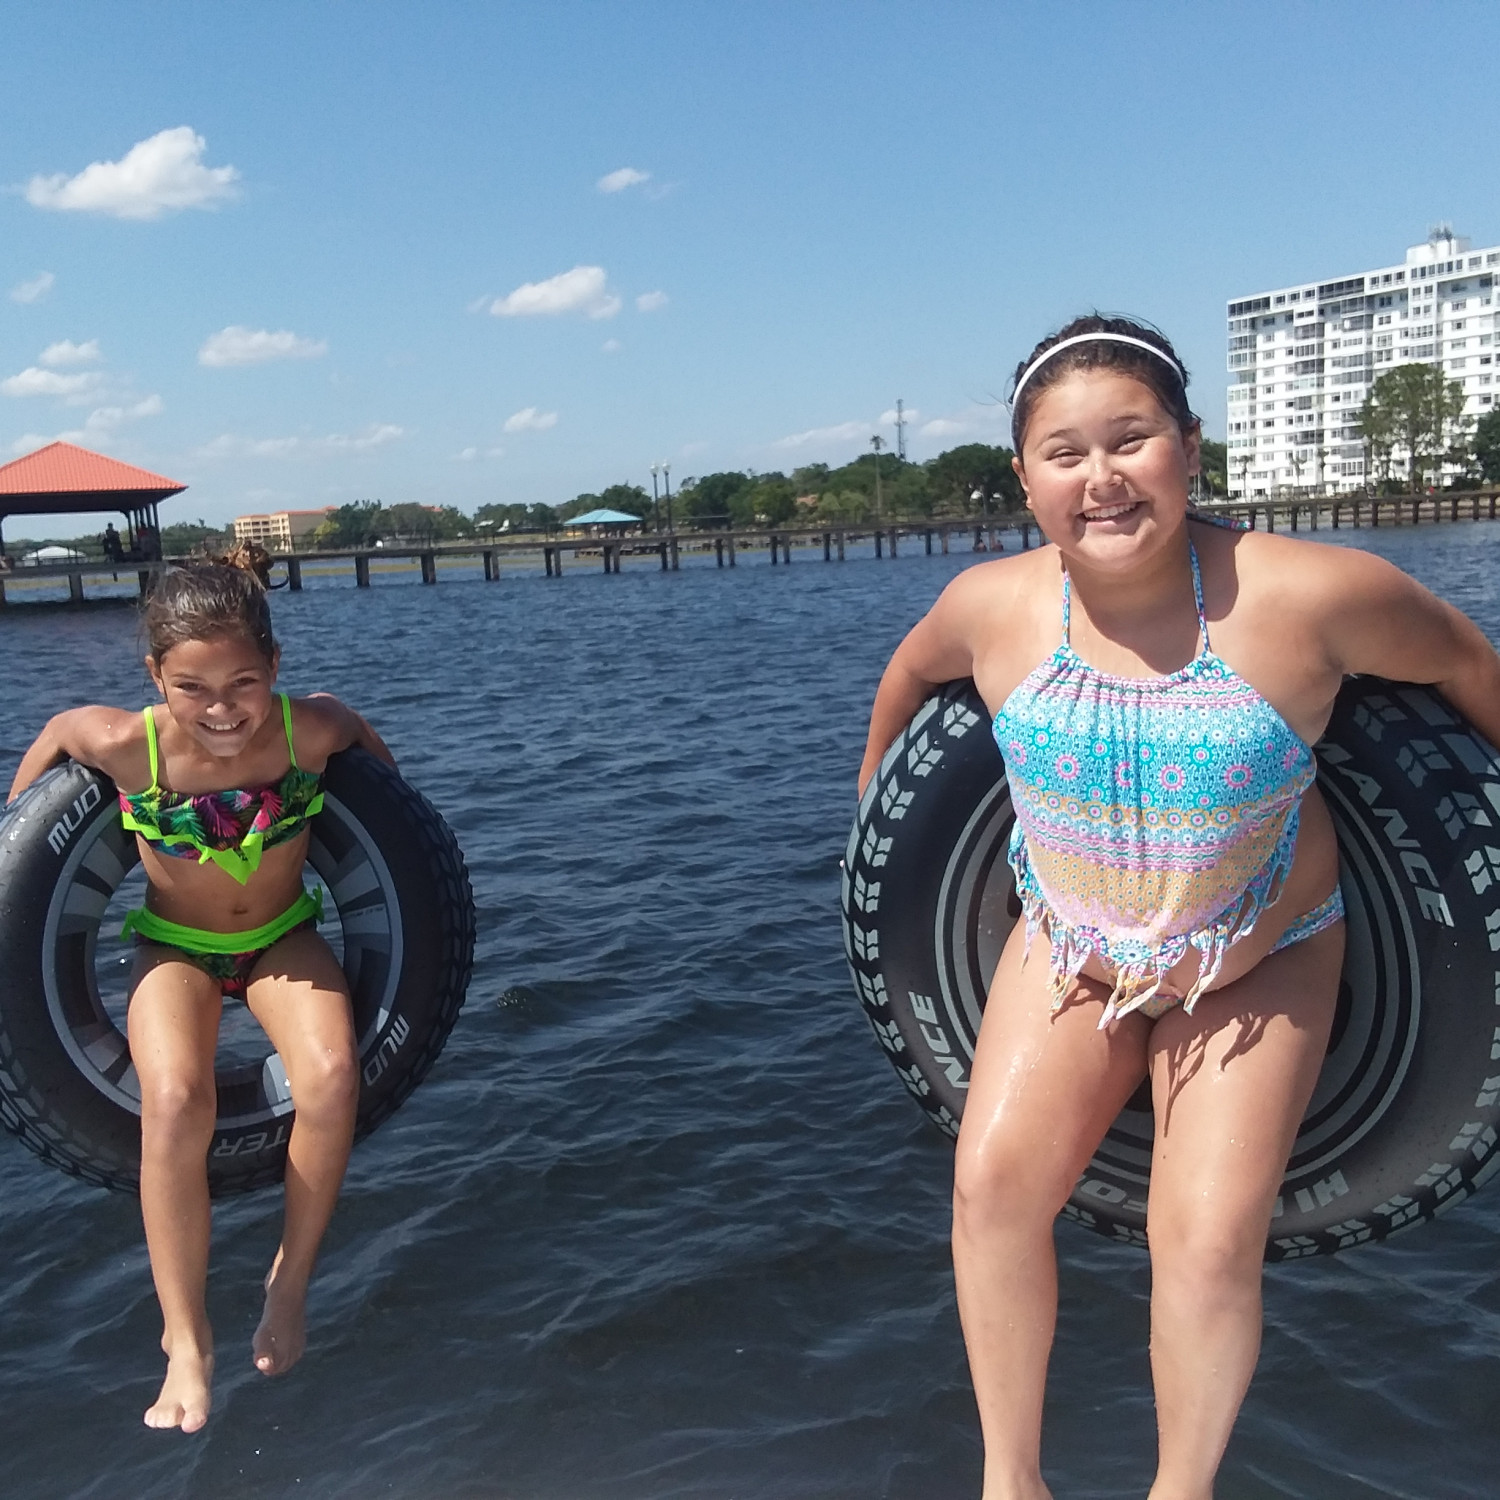 Title: Kids having fun - On board their Sportsman Island Bay 20 Bay Boat - Location: Sebring, Fl. Participating in the Photo Contest #SportsmanMay2018